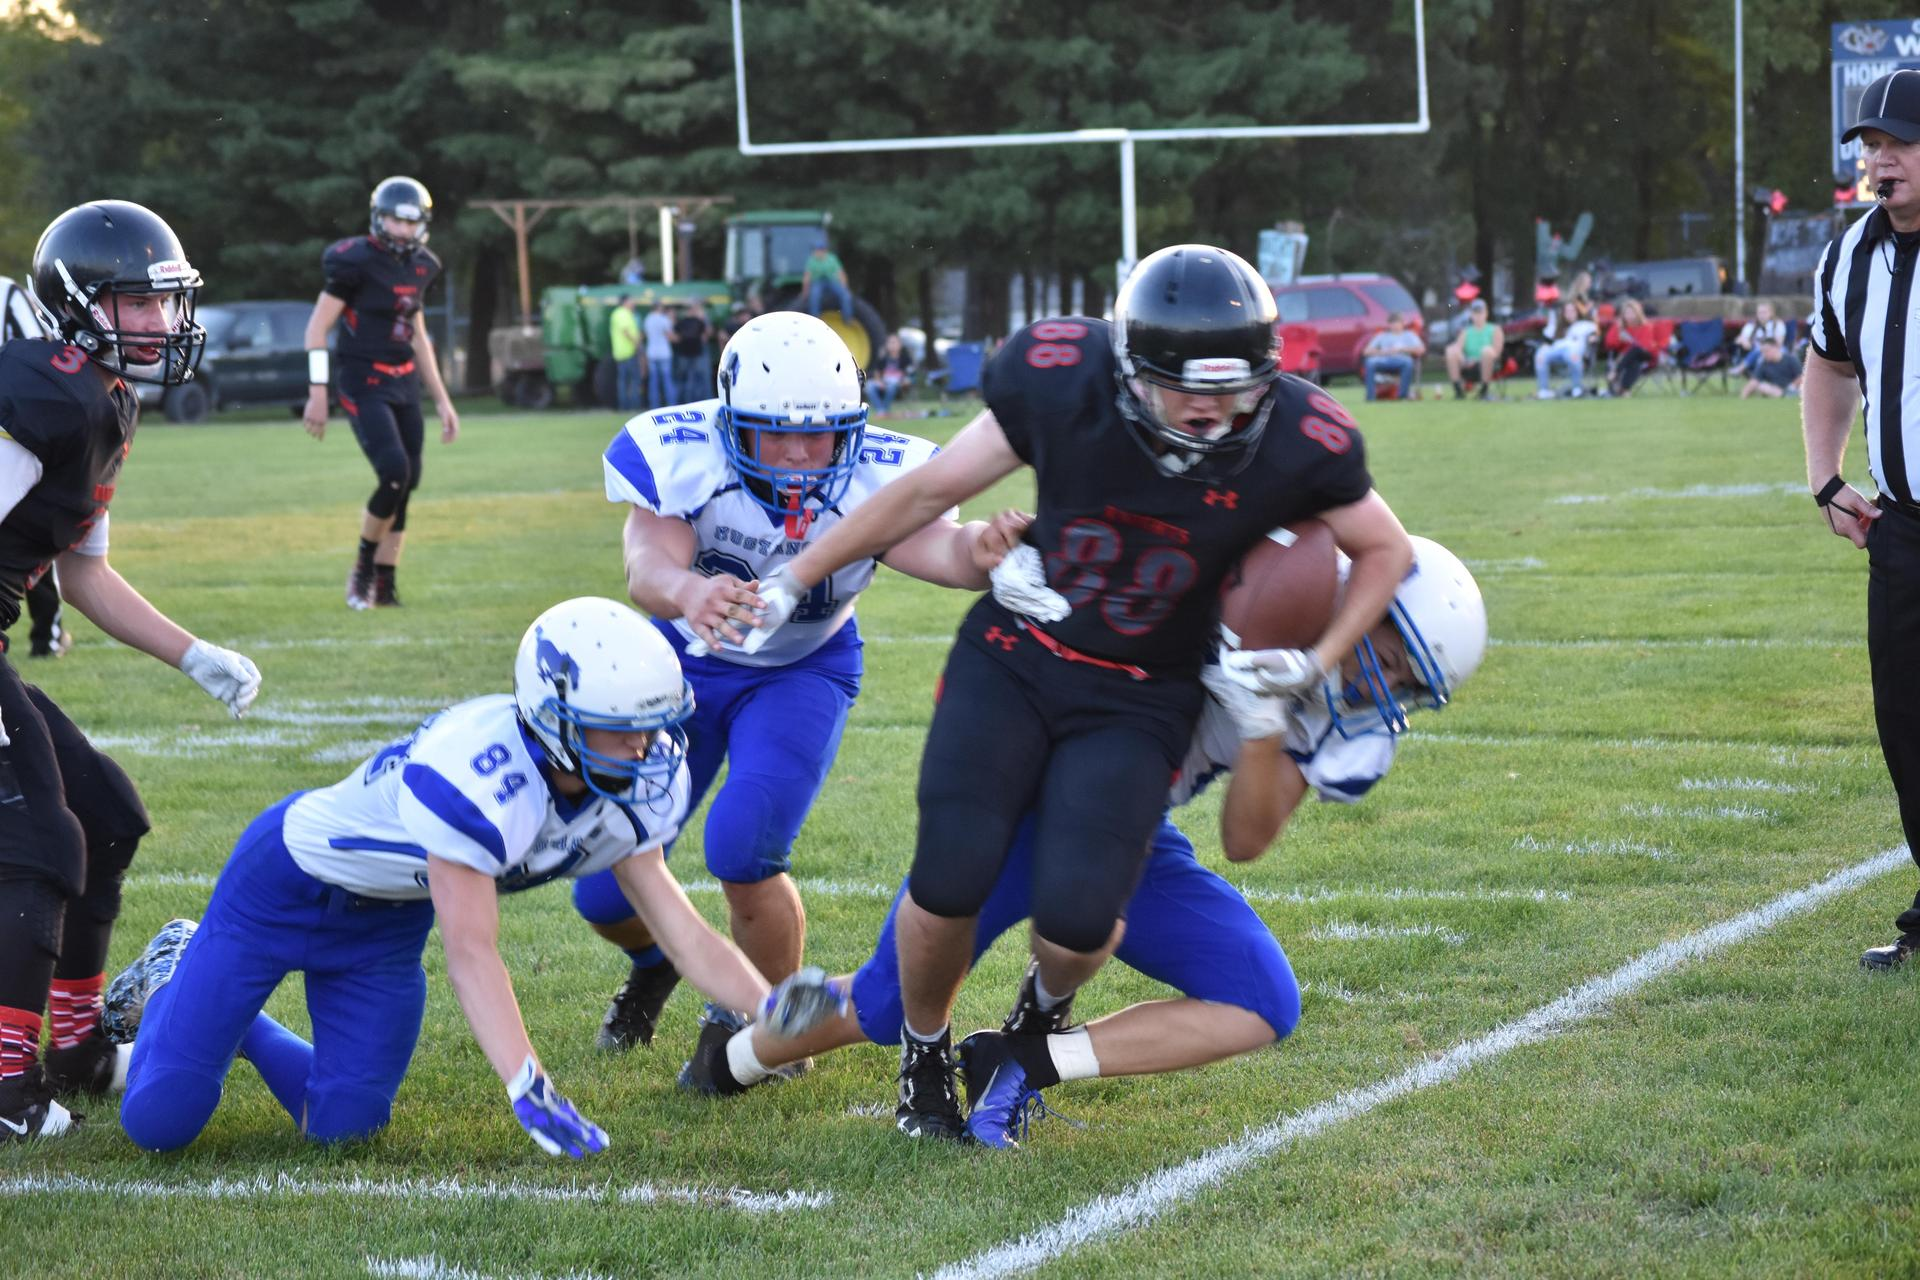 Football player being tackled